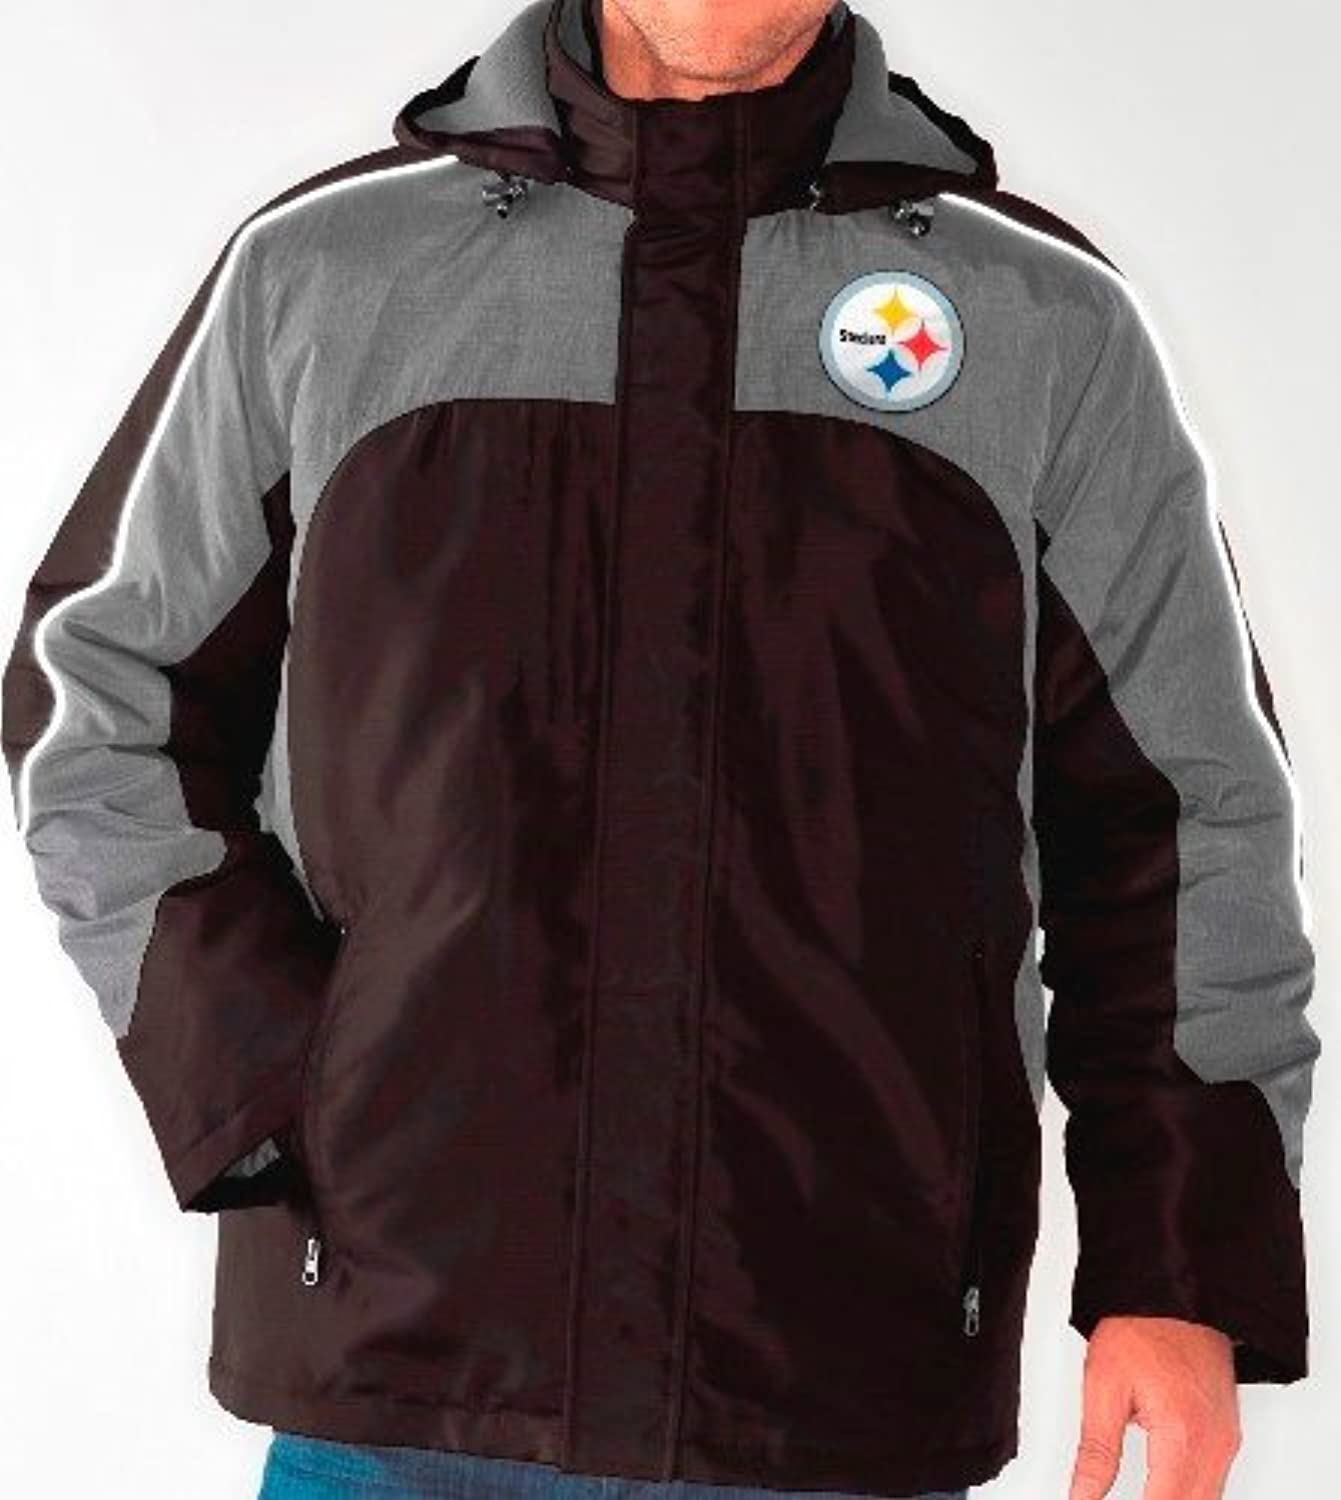 Pittsburgh Steelers nfl「「防御システム3 - in - 1 Heavyweightパフォーマンスジャケット